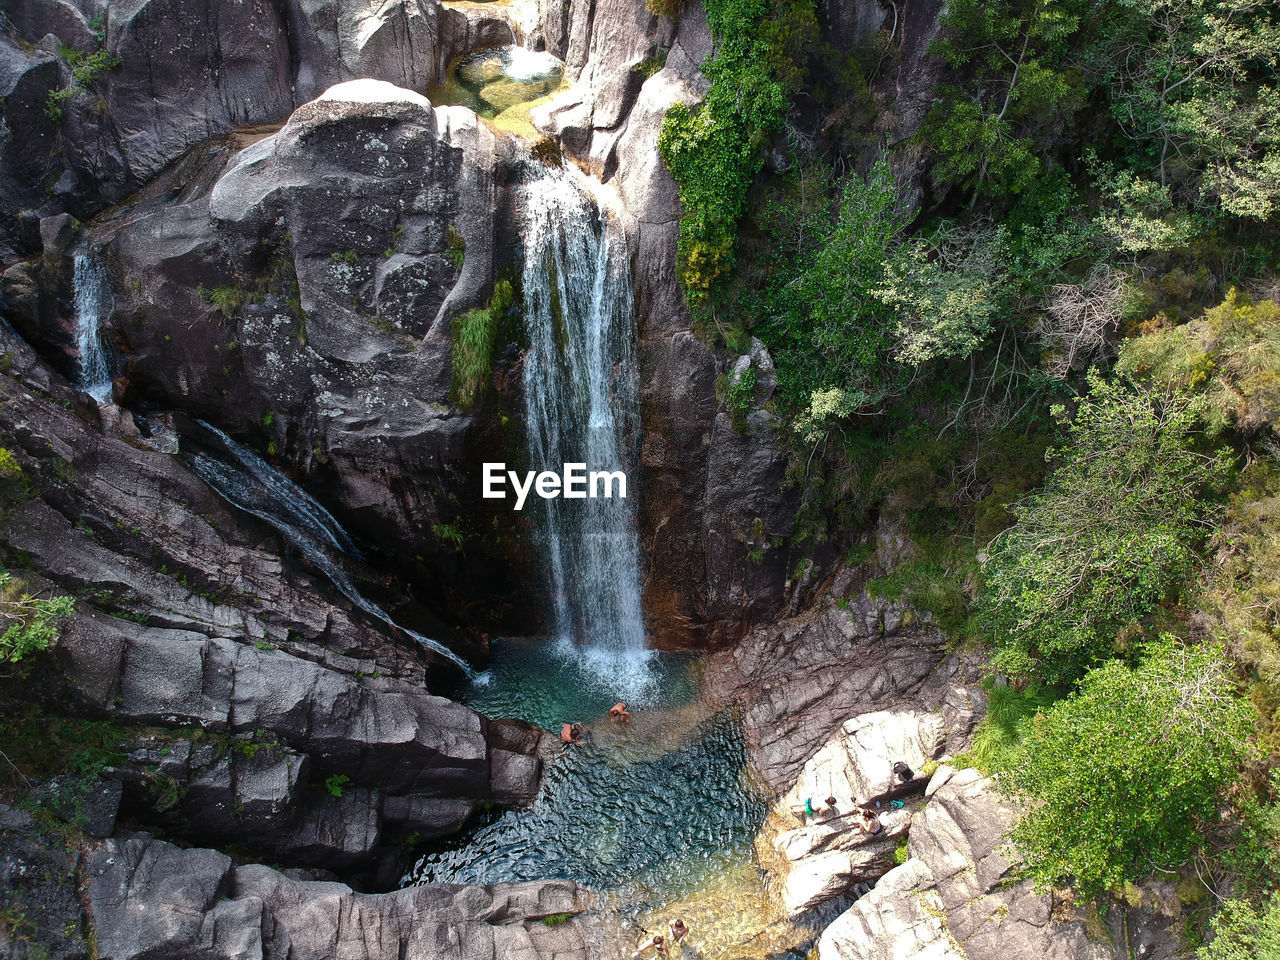 water, rock, waterfall, rock - object, scenics - nature, solid, beauty in nature, motion, flowing water, long exposure, rock formation, nature, forest, land, tree, blurred motion, non-urban scene, travel destinations, plant, outdoors, no people, power in nature, flowing, falling water, rainforest, formation